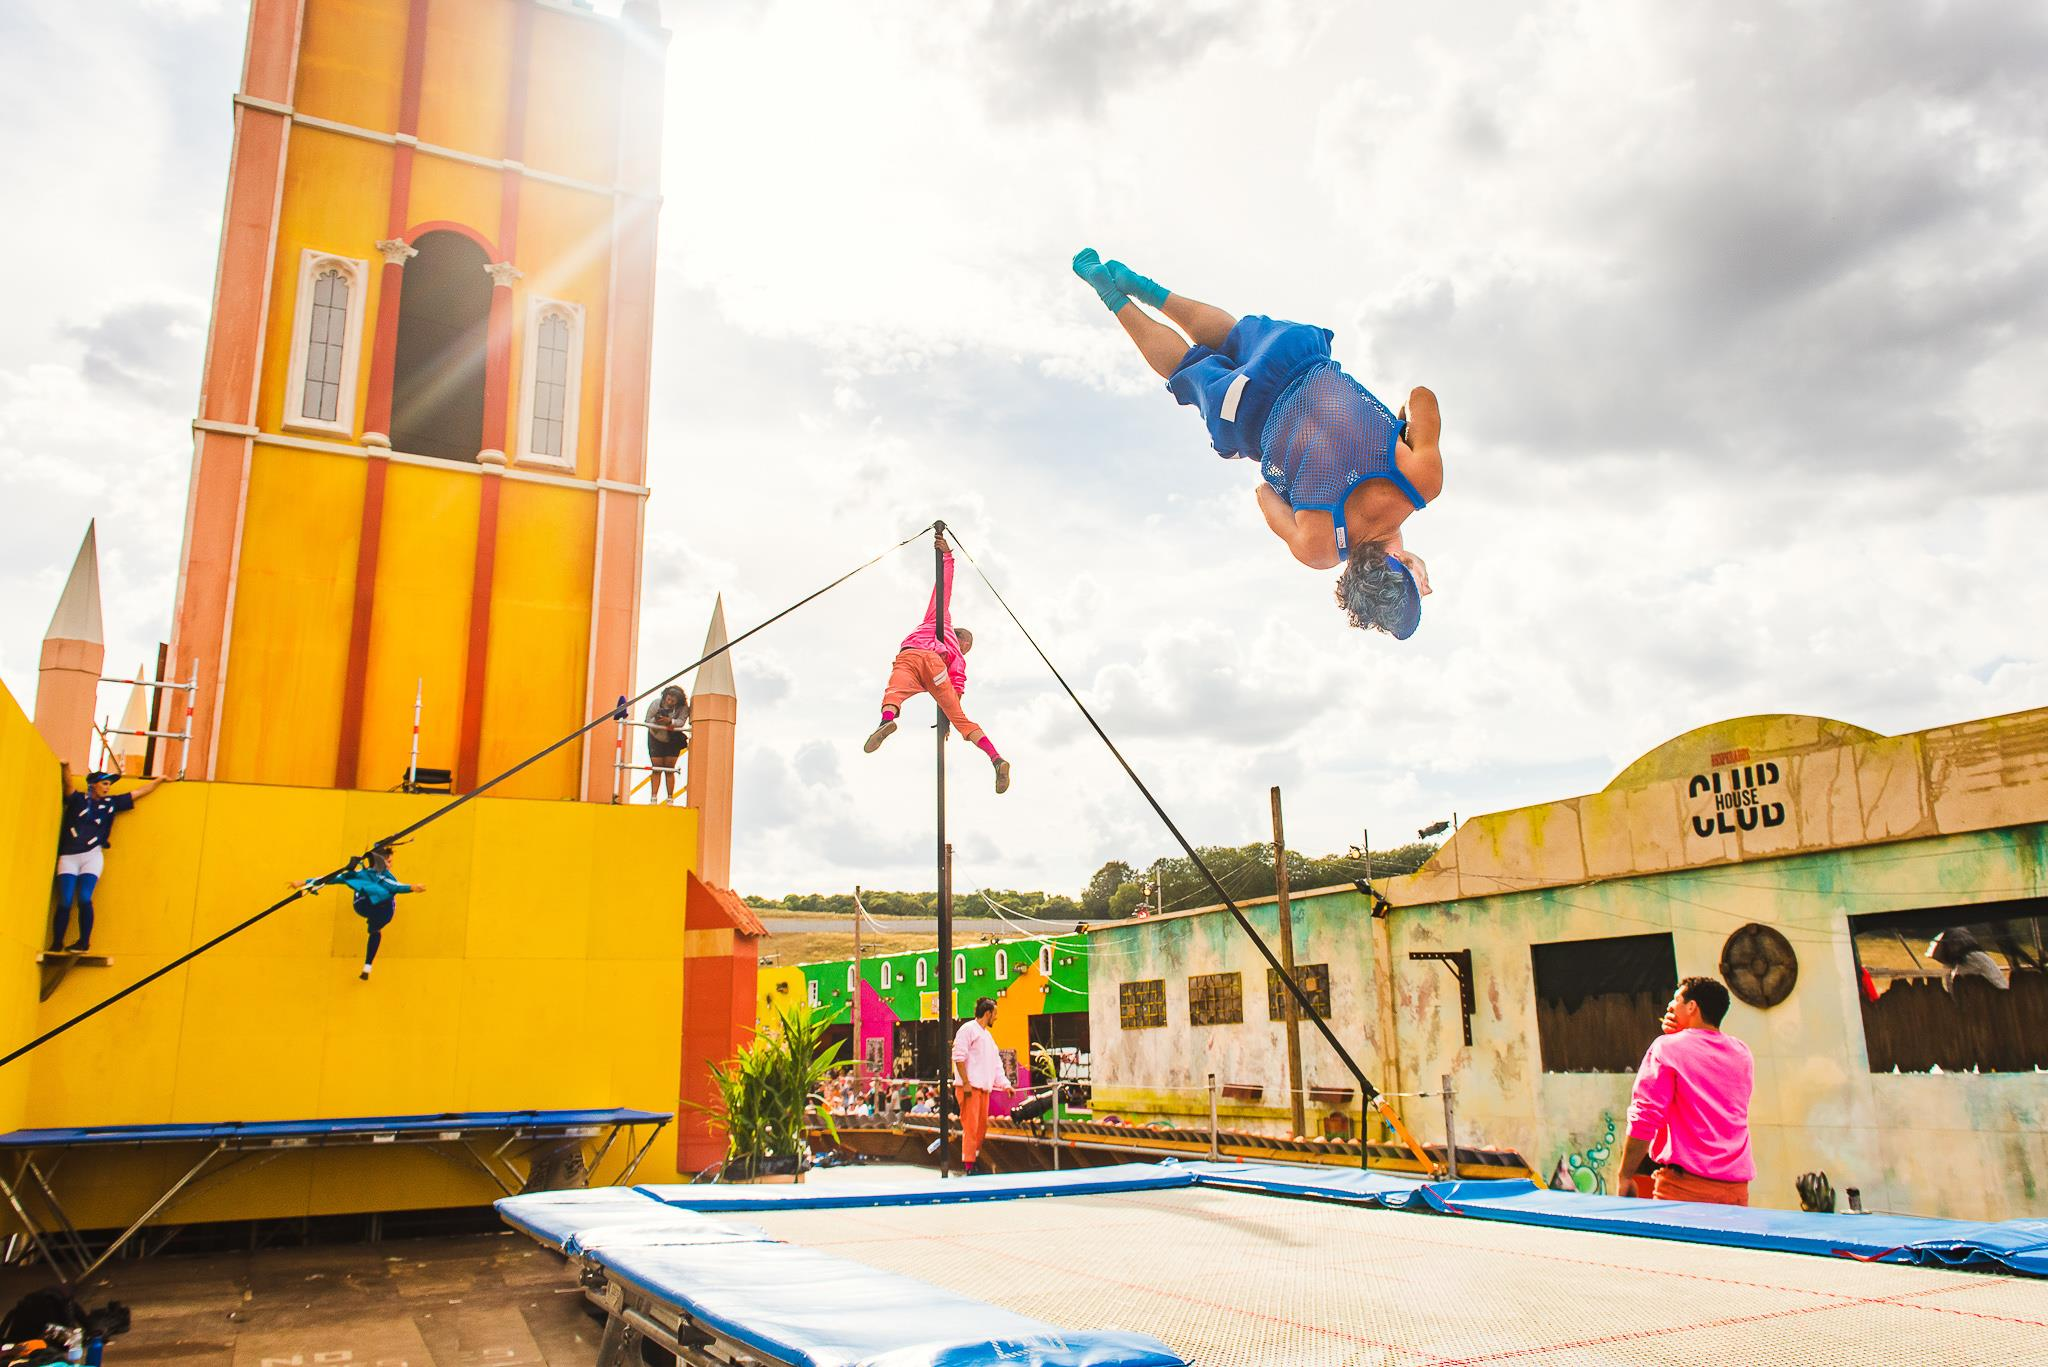 BOOMTOWN FAIRBarrio Loco/August 2018 - We're back storming the streets and rooftops with our electrifying stunts featuring trampolines, chinese poles, aerial & street dance all to the sounds of hip hop, garage, dancehall, latin funk and everything in between. check out full line up herehttps://www.boomtownfair.co.uk